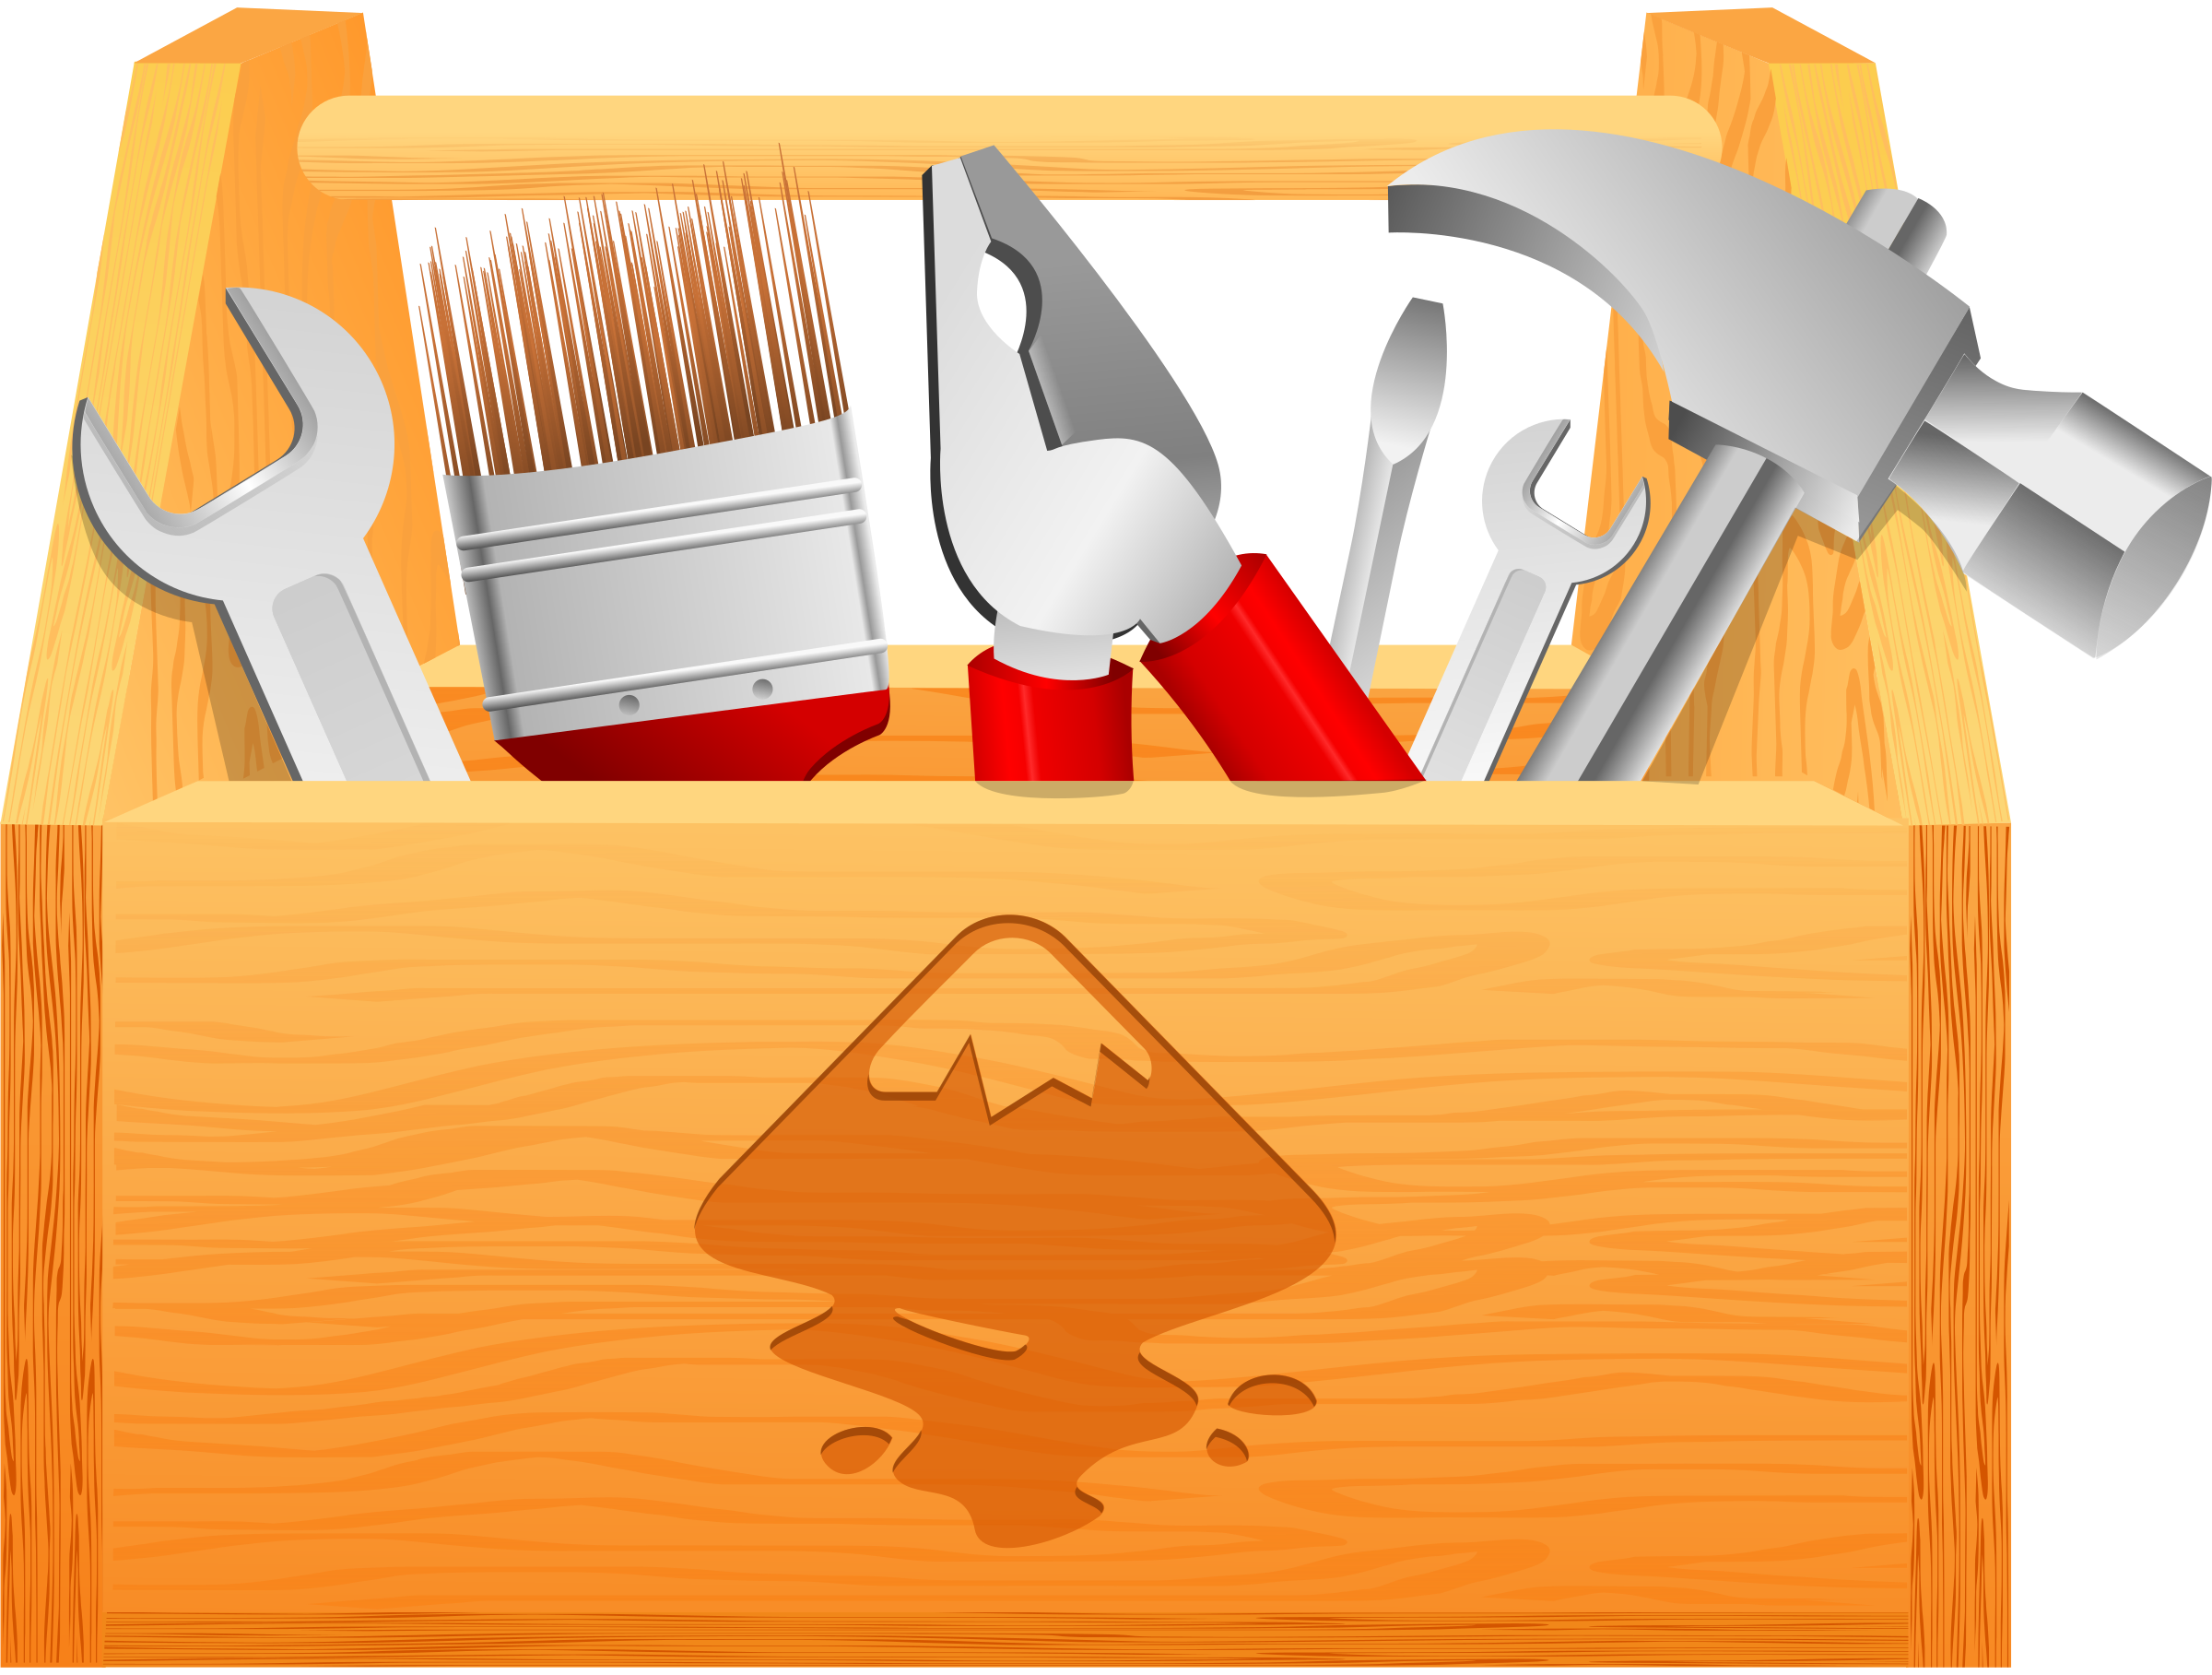 Toolbox By Arya Wigunavadhana Inkscape Toolbox With Some Tools Inside On Openclipart Teacher Tech Tools Tool Box Unit Plan